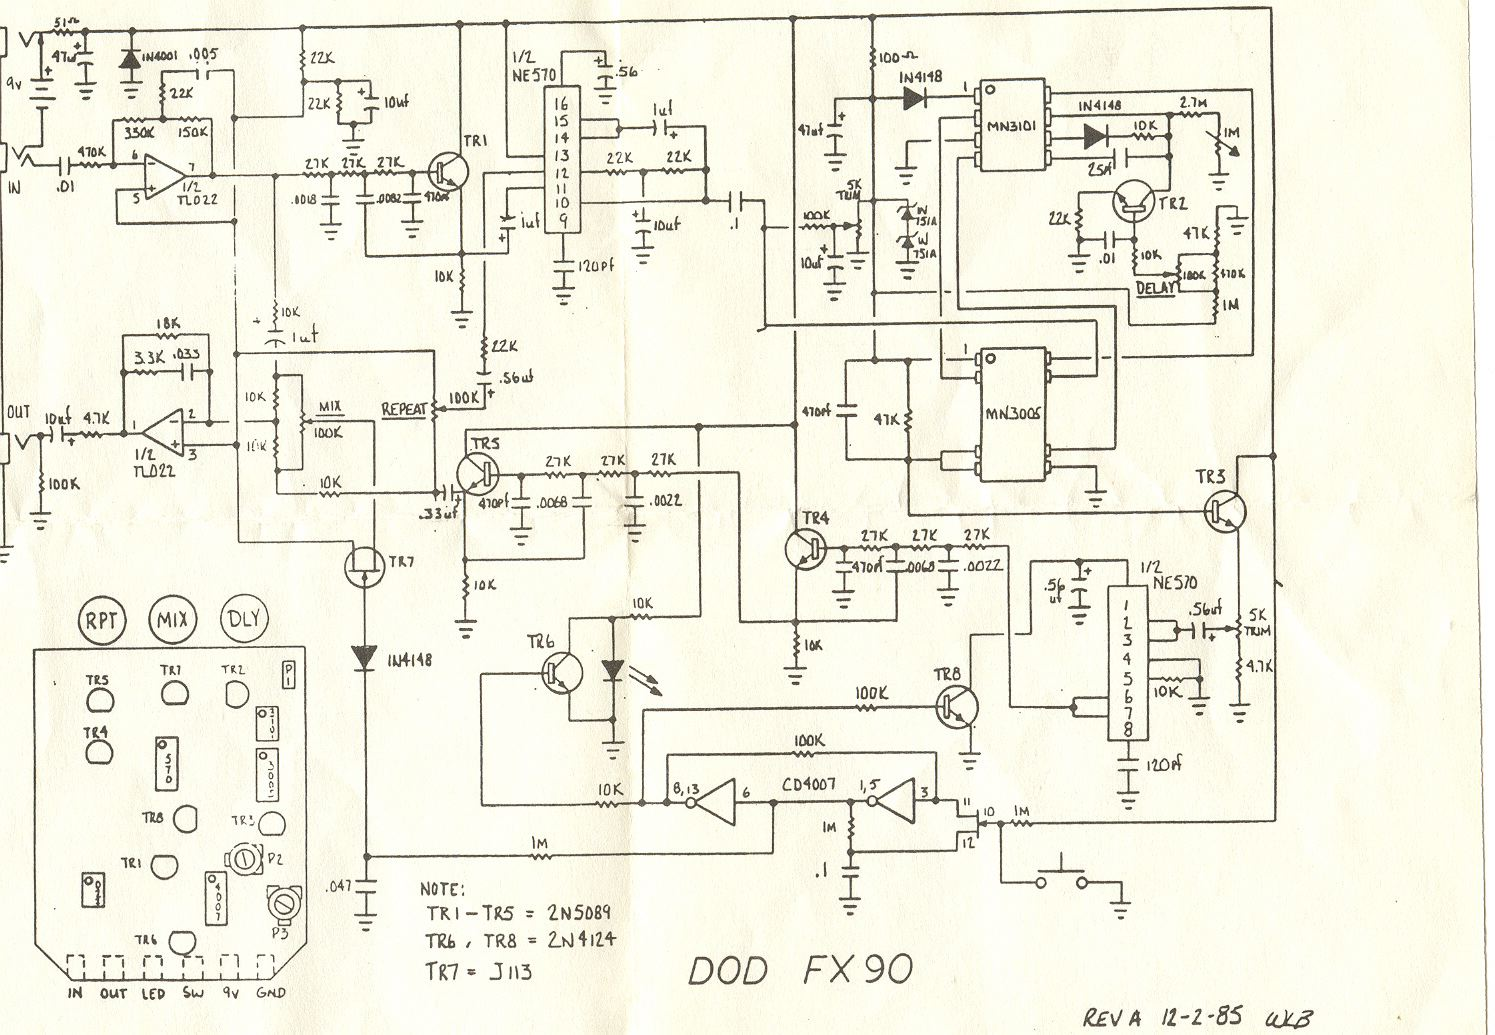 hight resolution of dod fx 53 wiring diagram wiring diagram portal honda motorcycle repair diagrams dod fx 53 wiring diagram